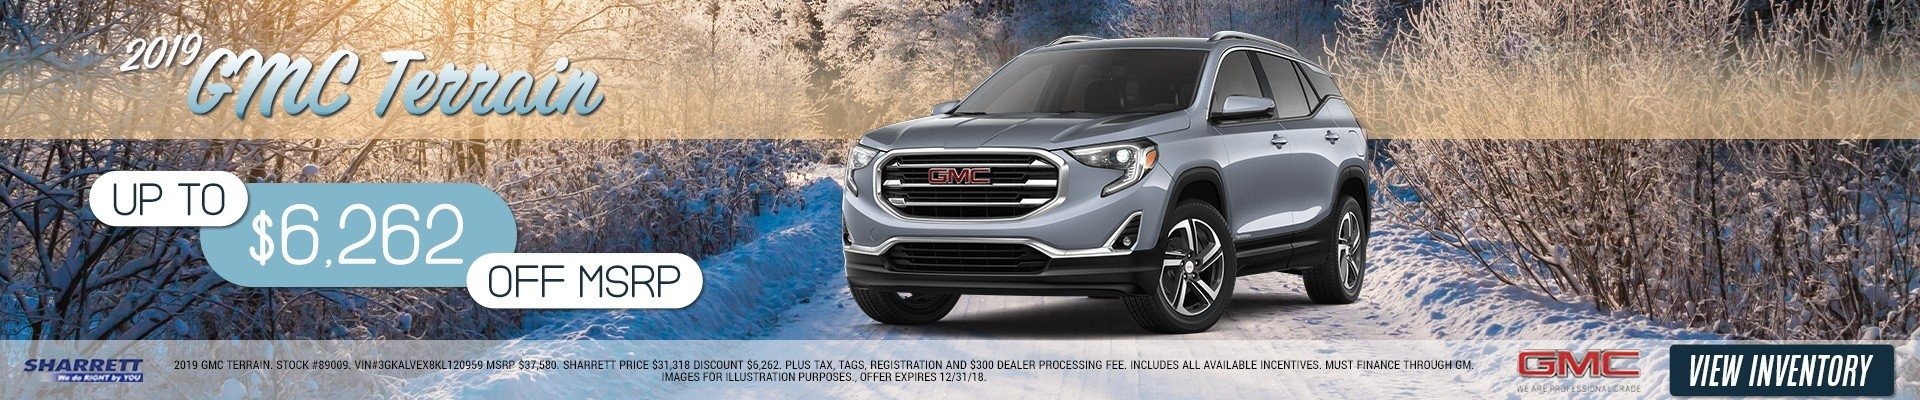 Up to $6,262 off MSRP on a 2019 GMC Terrain